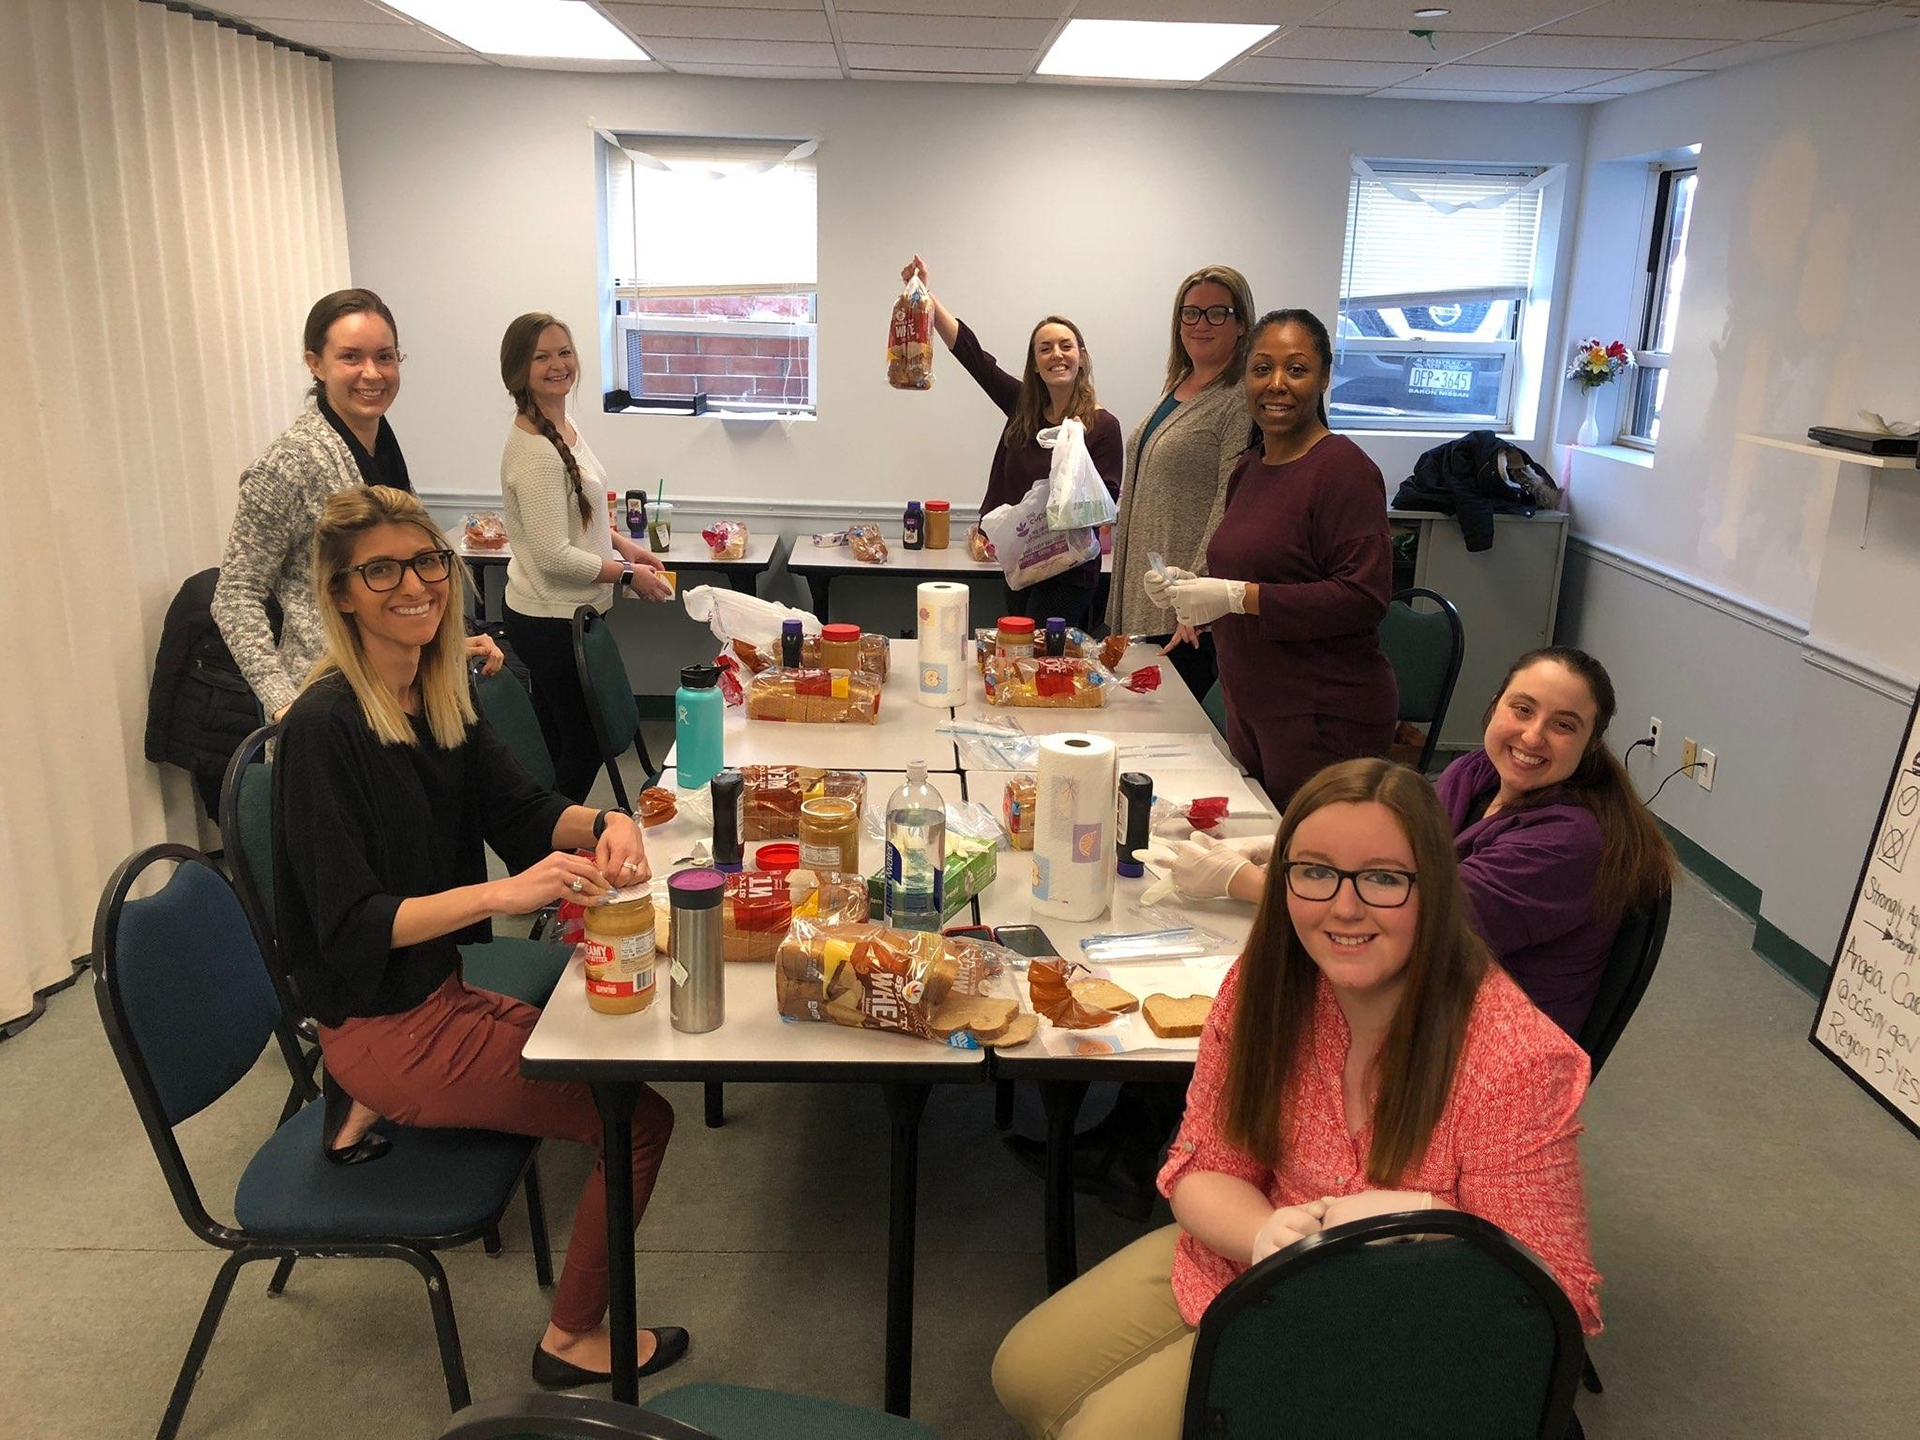 RISE Program   The team made 125 PB&J sandwiches for two local food banks. We will be continuing to this on an ongoing monthly basis!